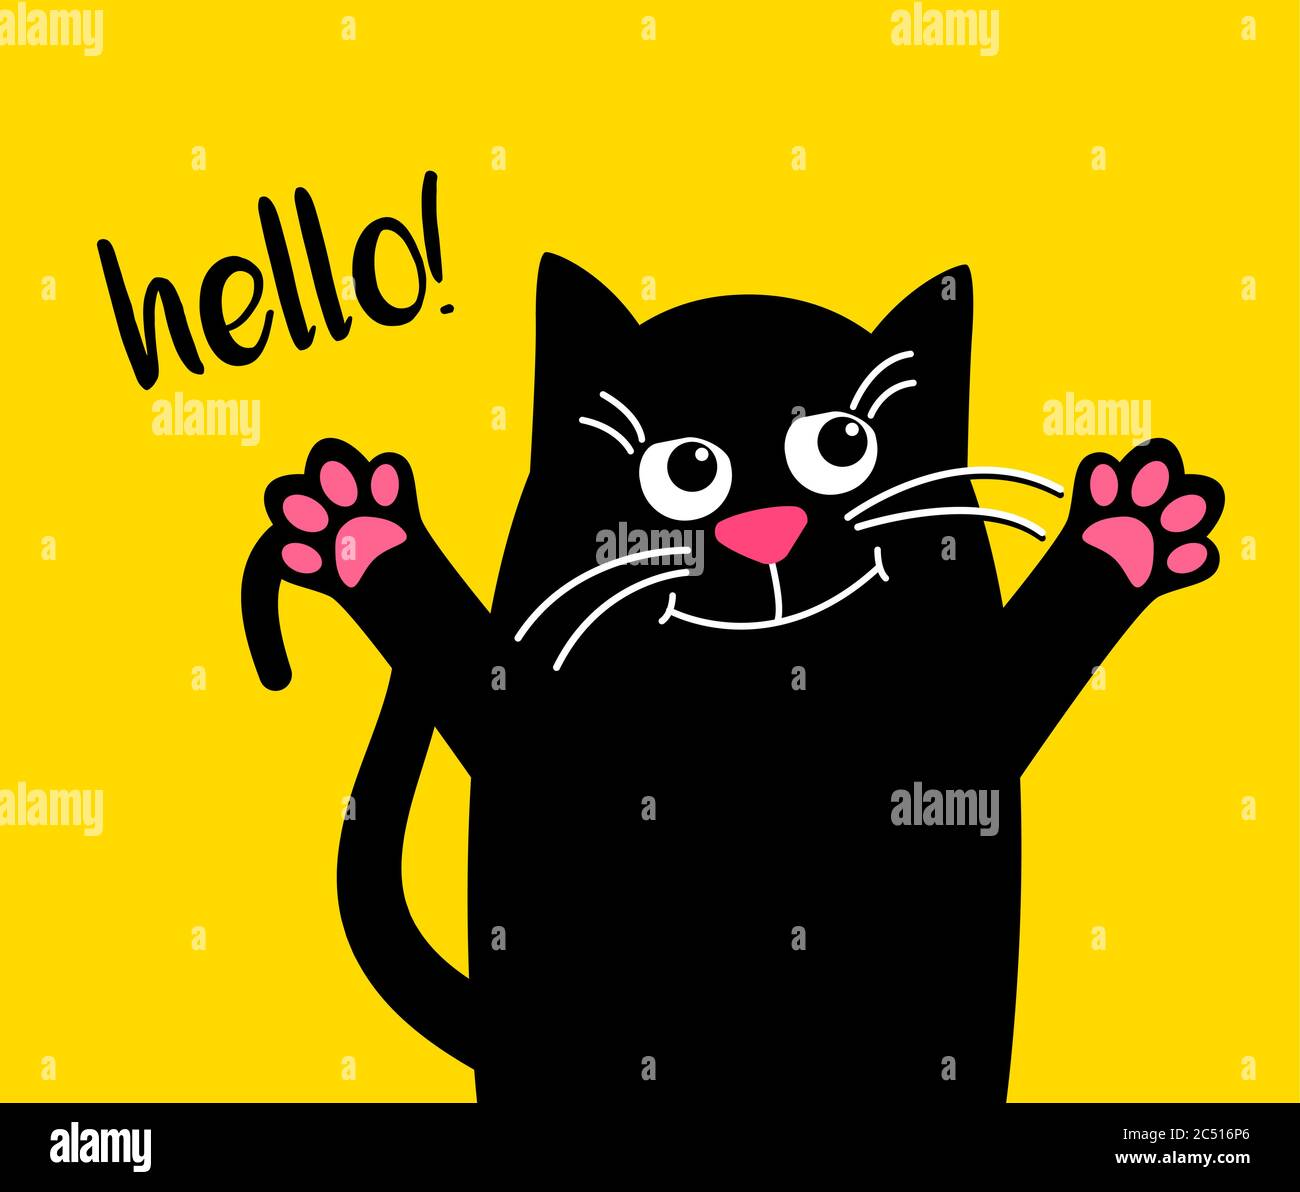 Happy Cute Cat With Text Hello Kawaii Black Cat On Yellow Background Hugs Vector Cartoon Illustration In Flat For Printing On Mugs Or T Shirts Stock Vector Image Art Alamy